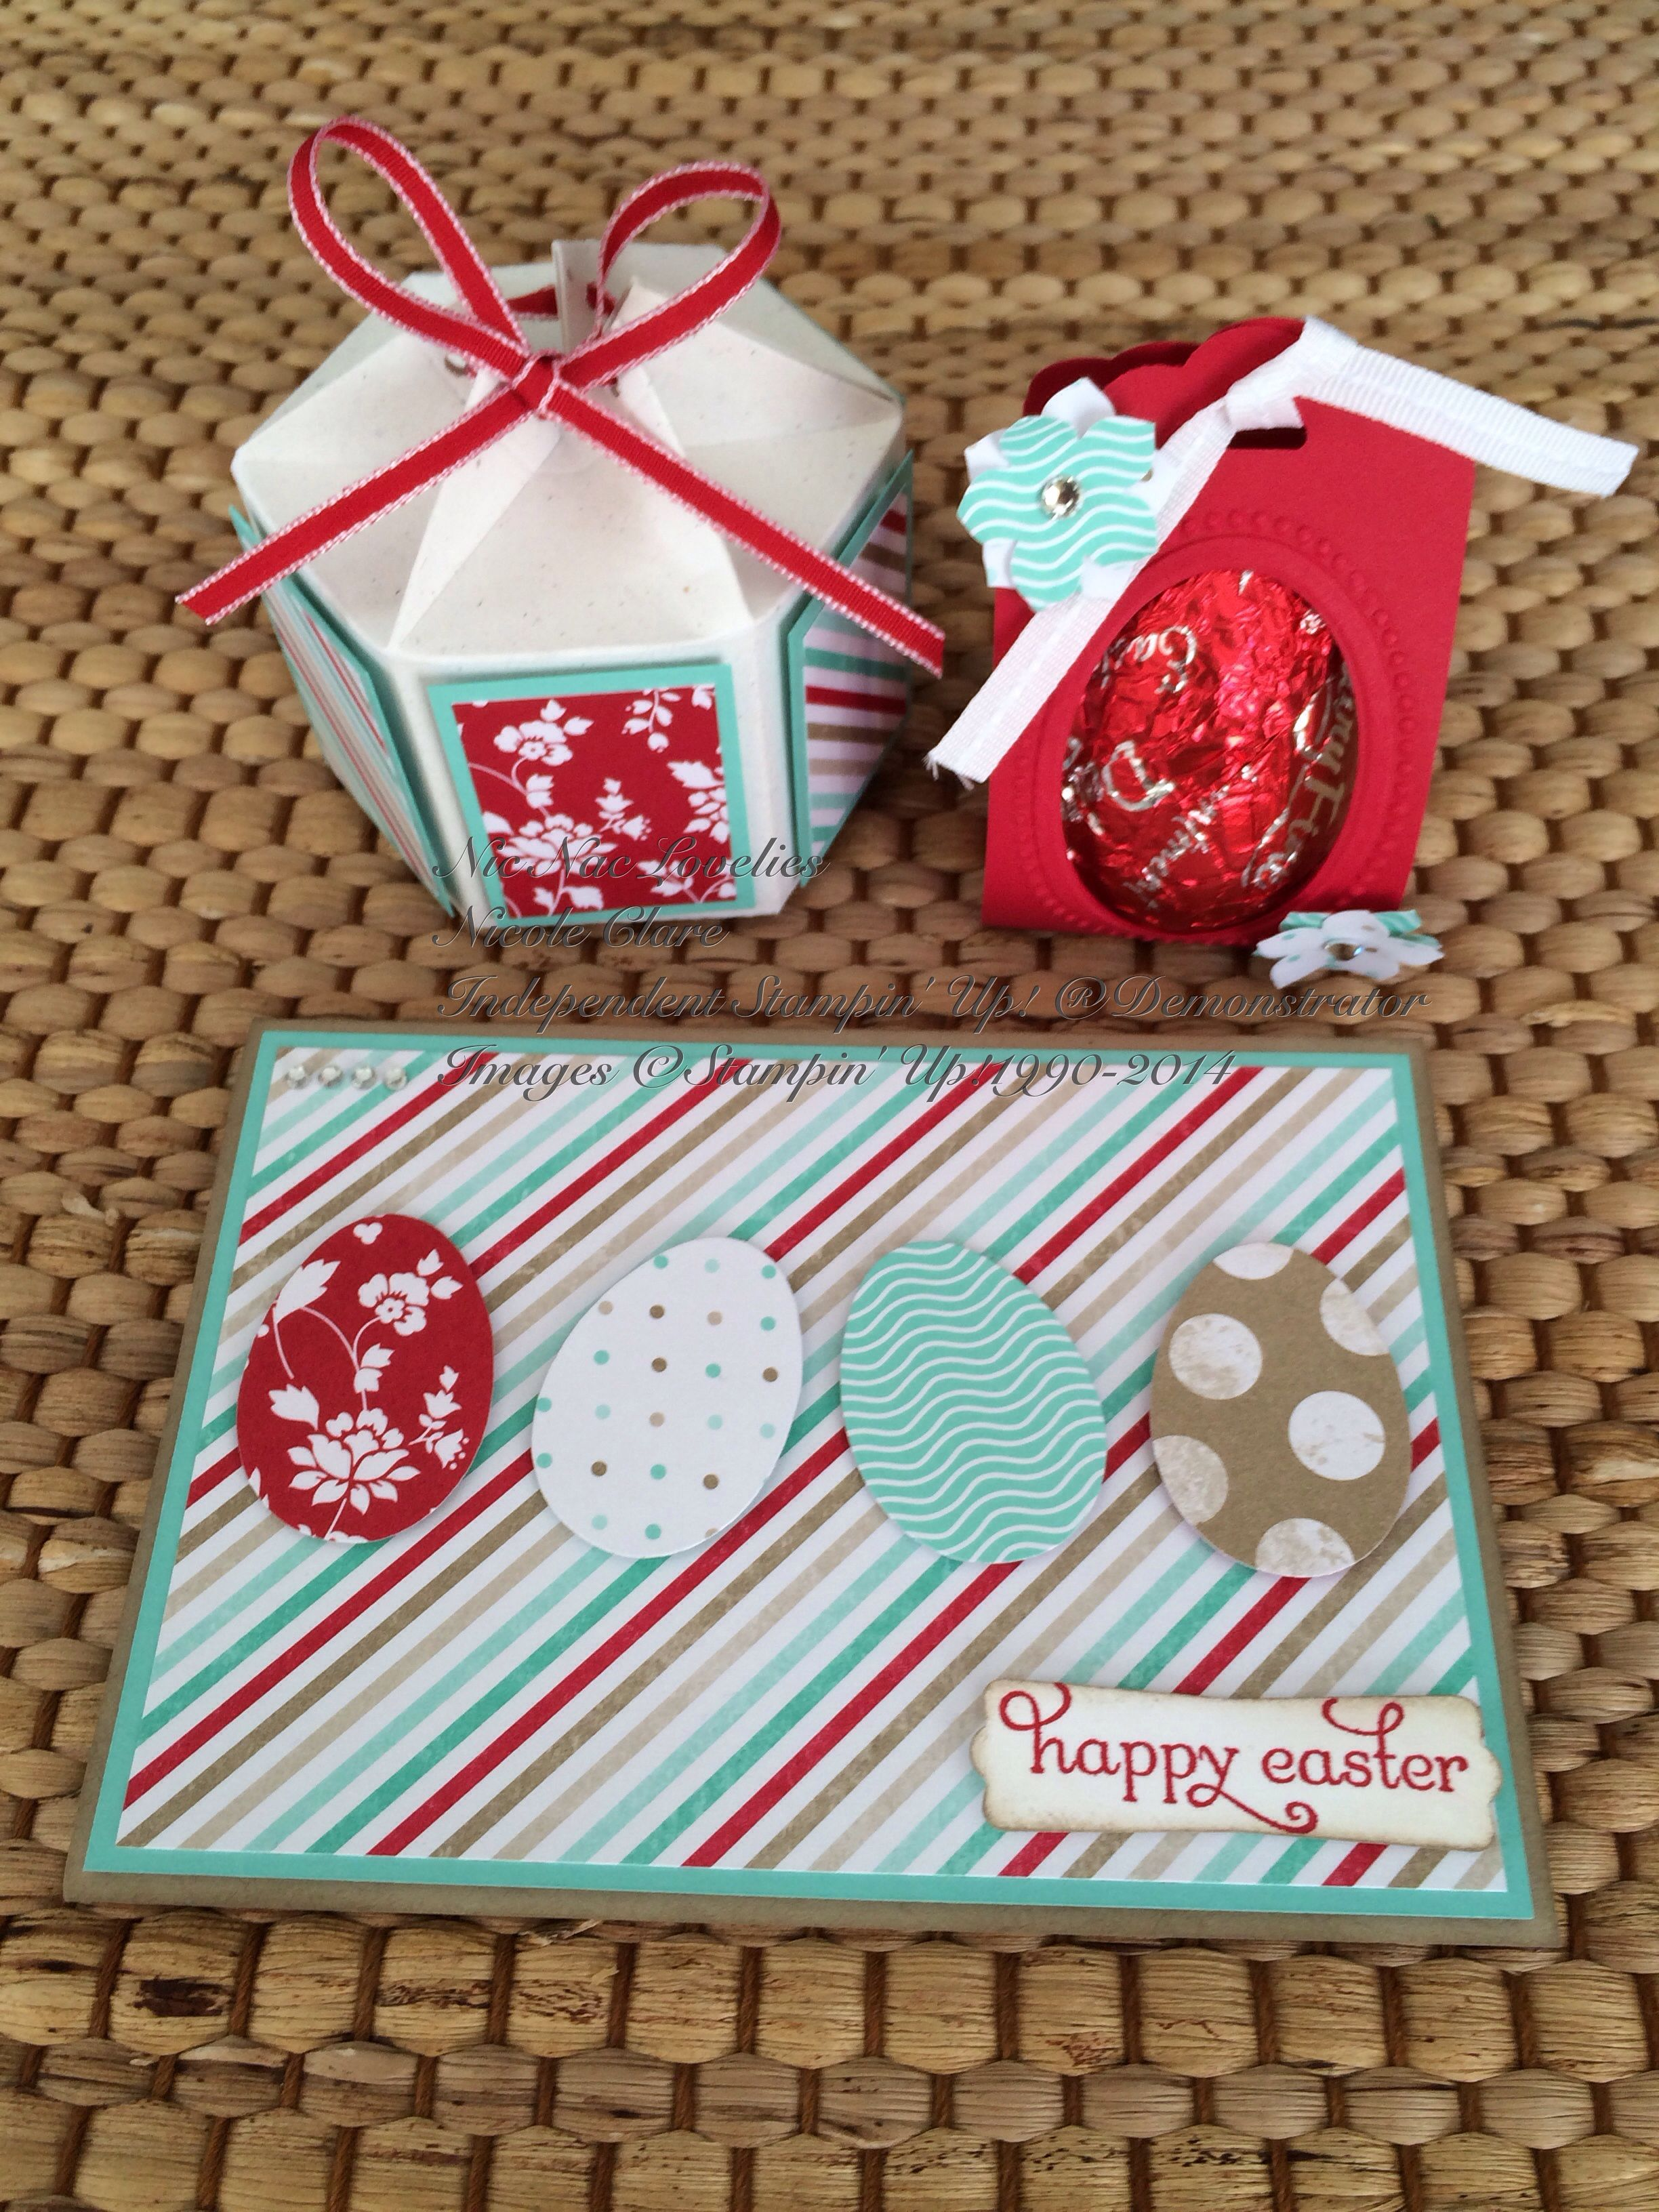 Easter Class selection using:Stampin' Up! Colours Real Red, Crumb Cake, Whisper White, Coastal Cabana with Fresh Prints Designer Series Parer Stack